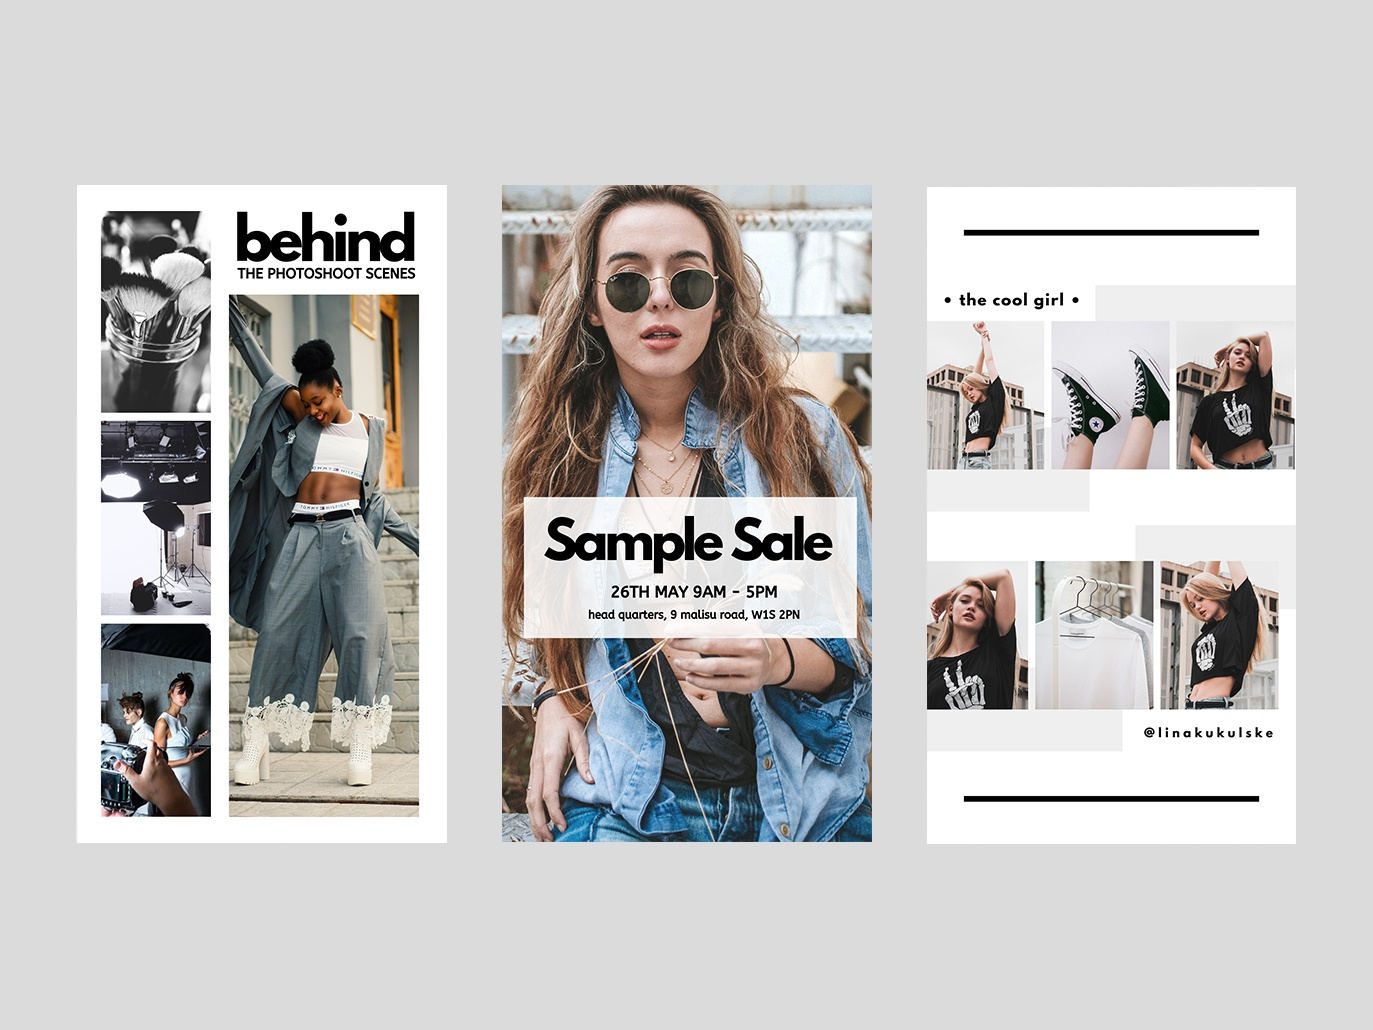 """9""""IDEAS - Underground Bundle instagram stories instagram story 2019 graphics trending graphics fashion social media fashion graphics style edgy bold instagram templates social media templates instagram branding instagram bundle instagram design social media pack social media bundle social media branding"""